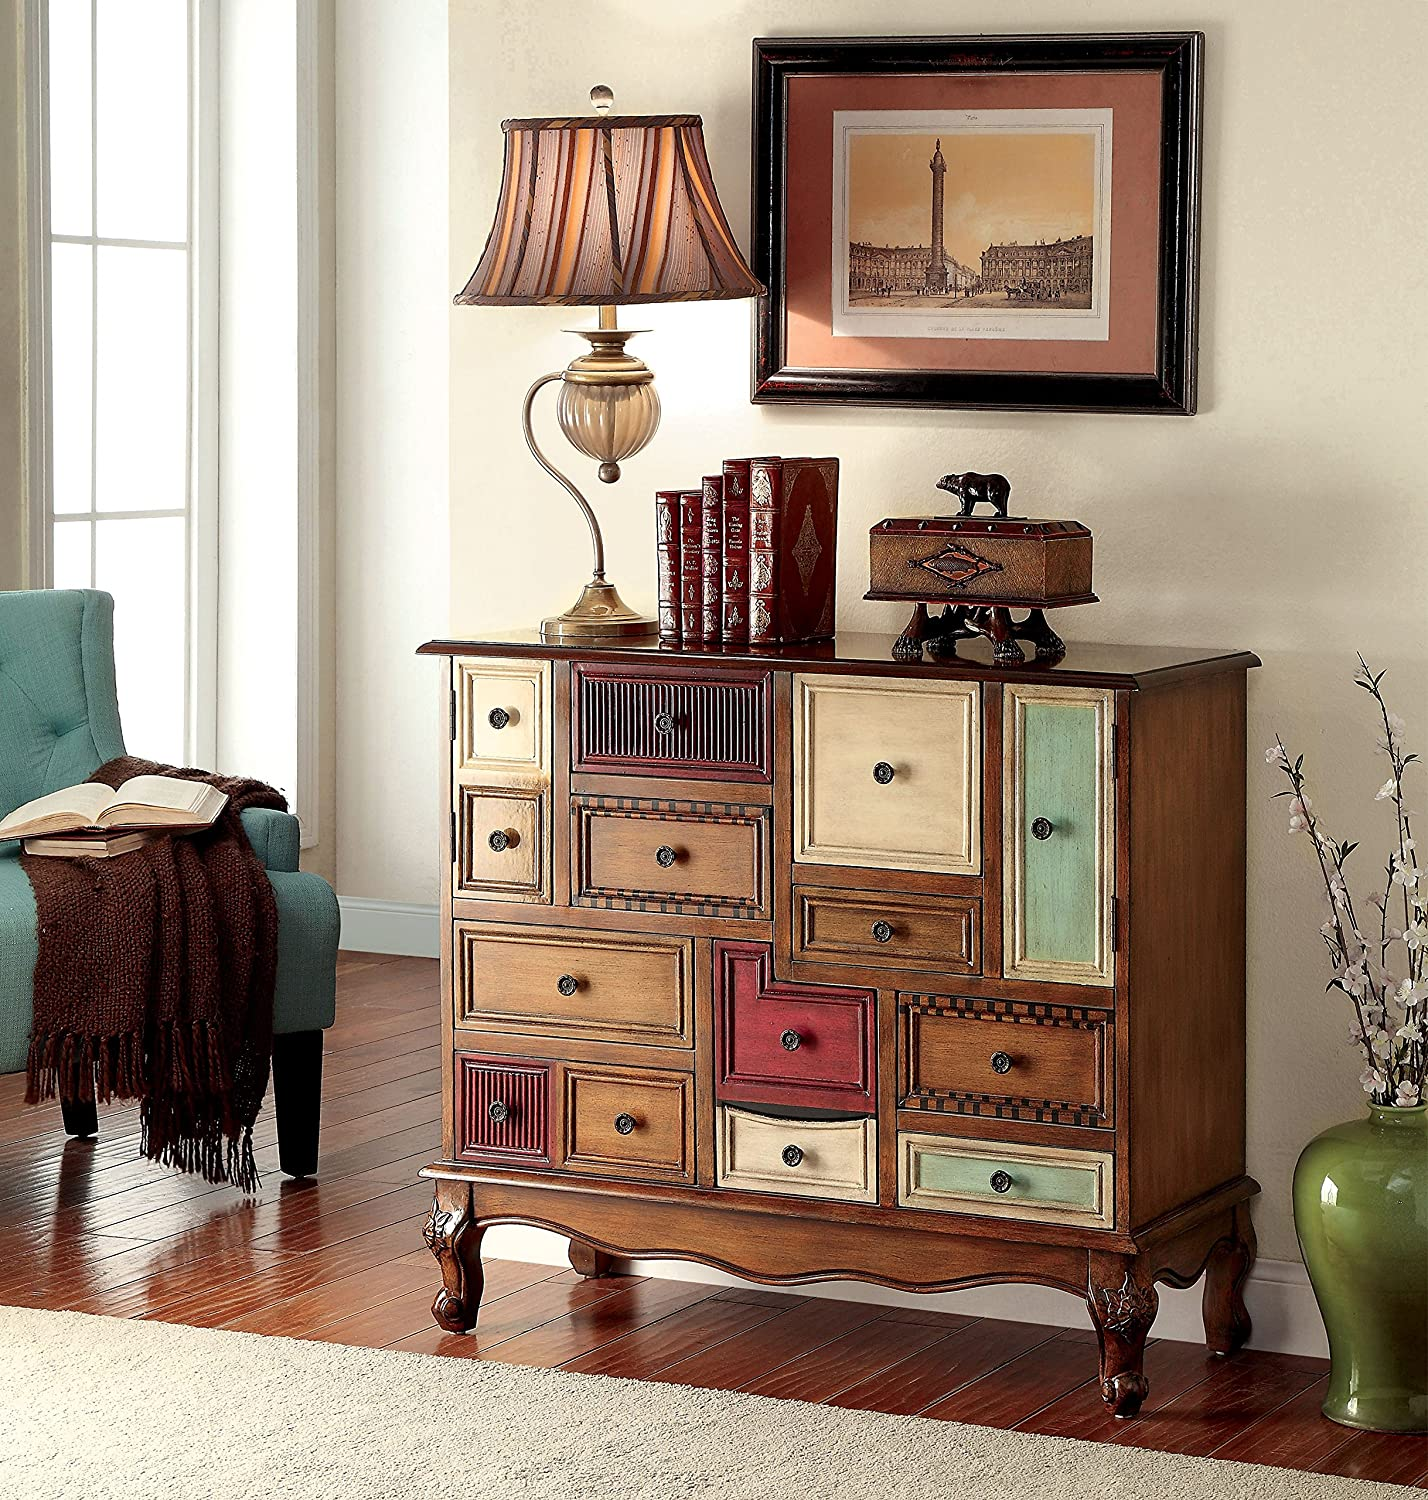 Furniture of America Zeppo Vintage Style Storage Chest Antique Walnut : chest furniture storage  - Aquiesqueretaro.Com